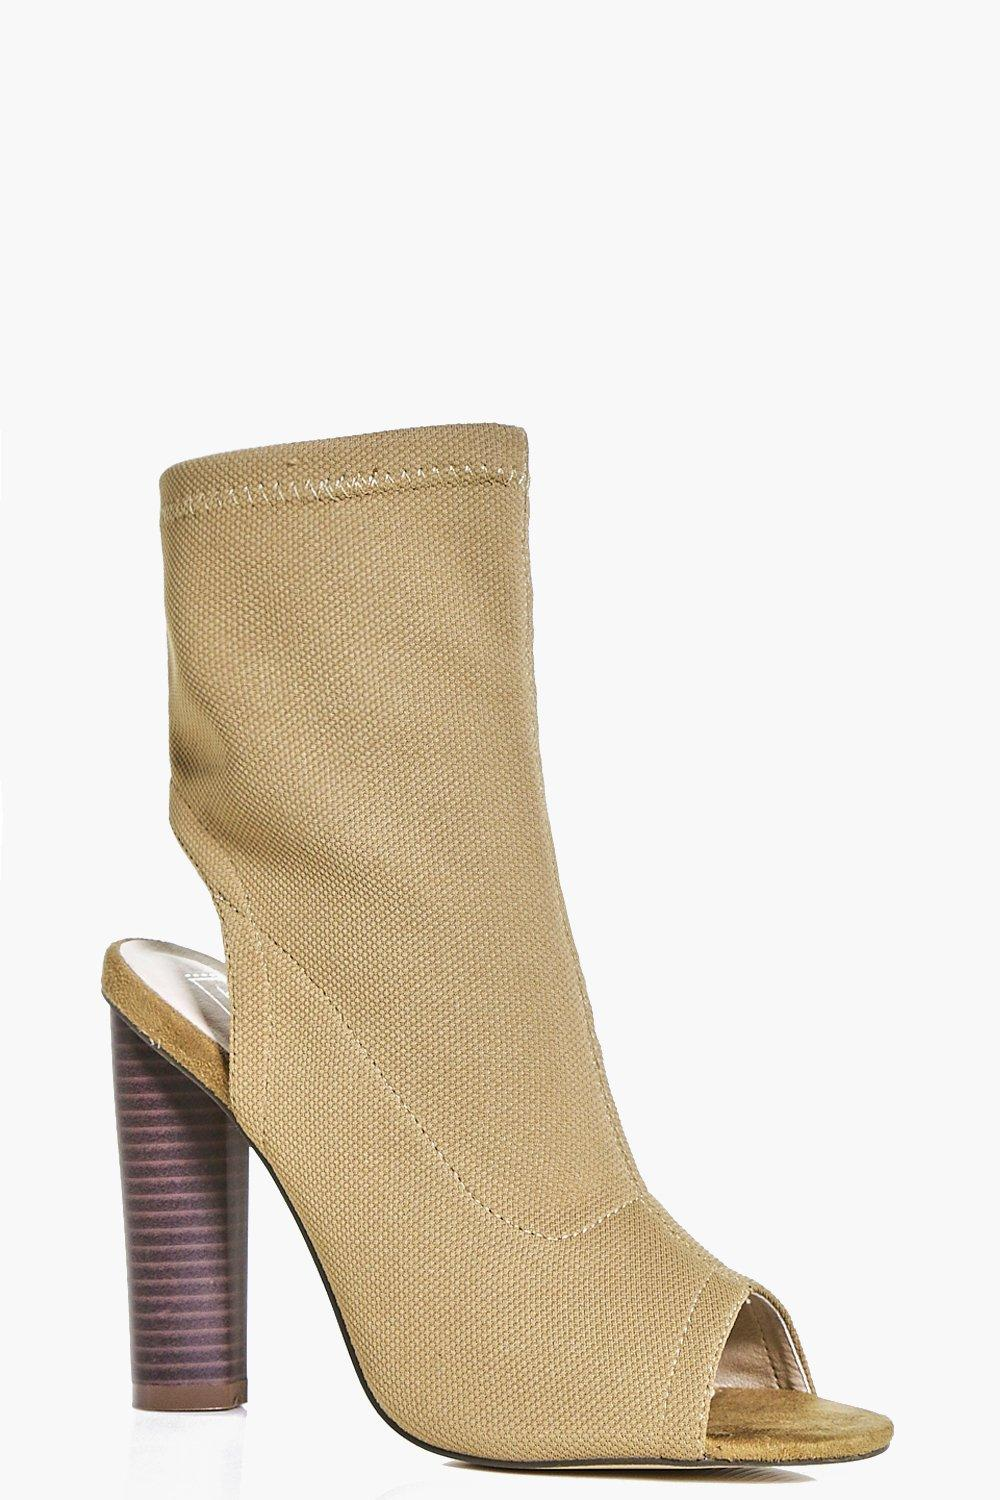 Tegan Peeptoe Open Back Shoe Boot